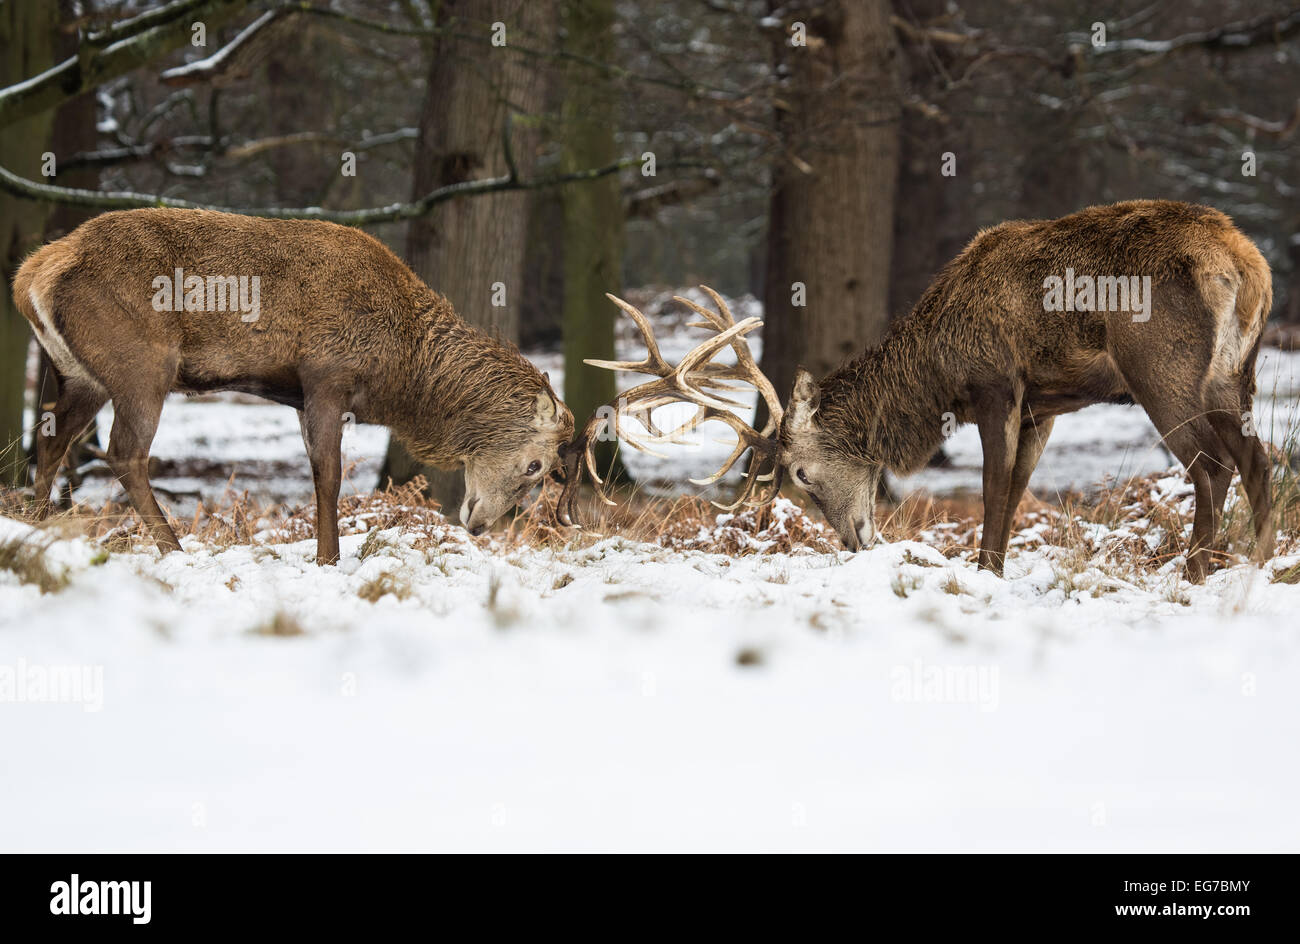 Red deer stags clashing antlers in the snow. Richmond Park London - Stock Image